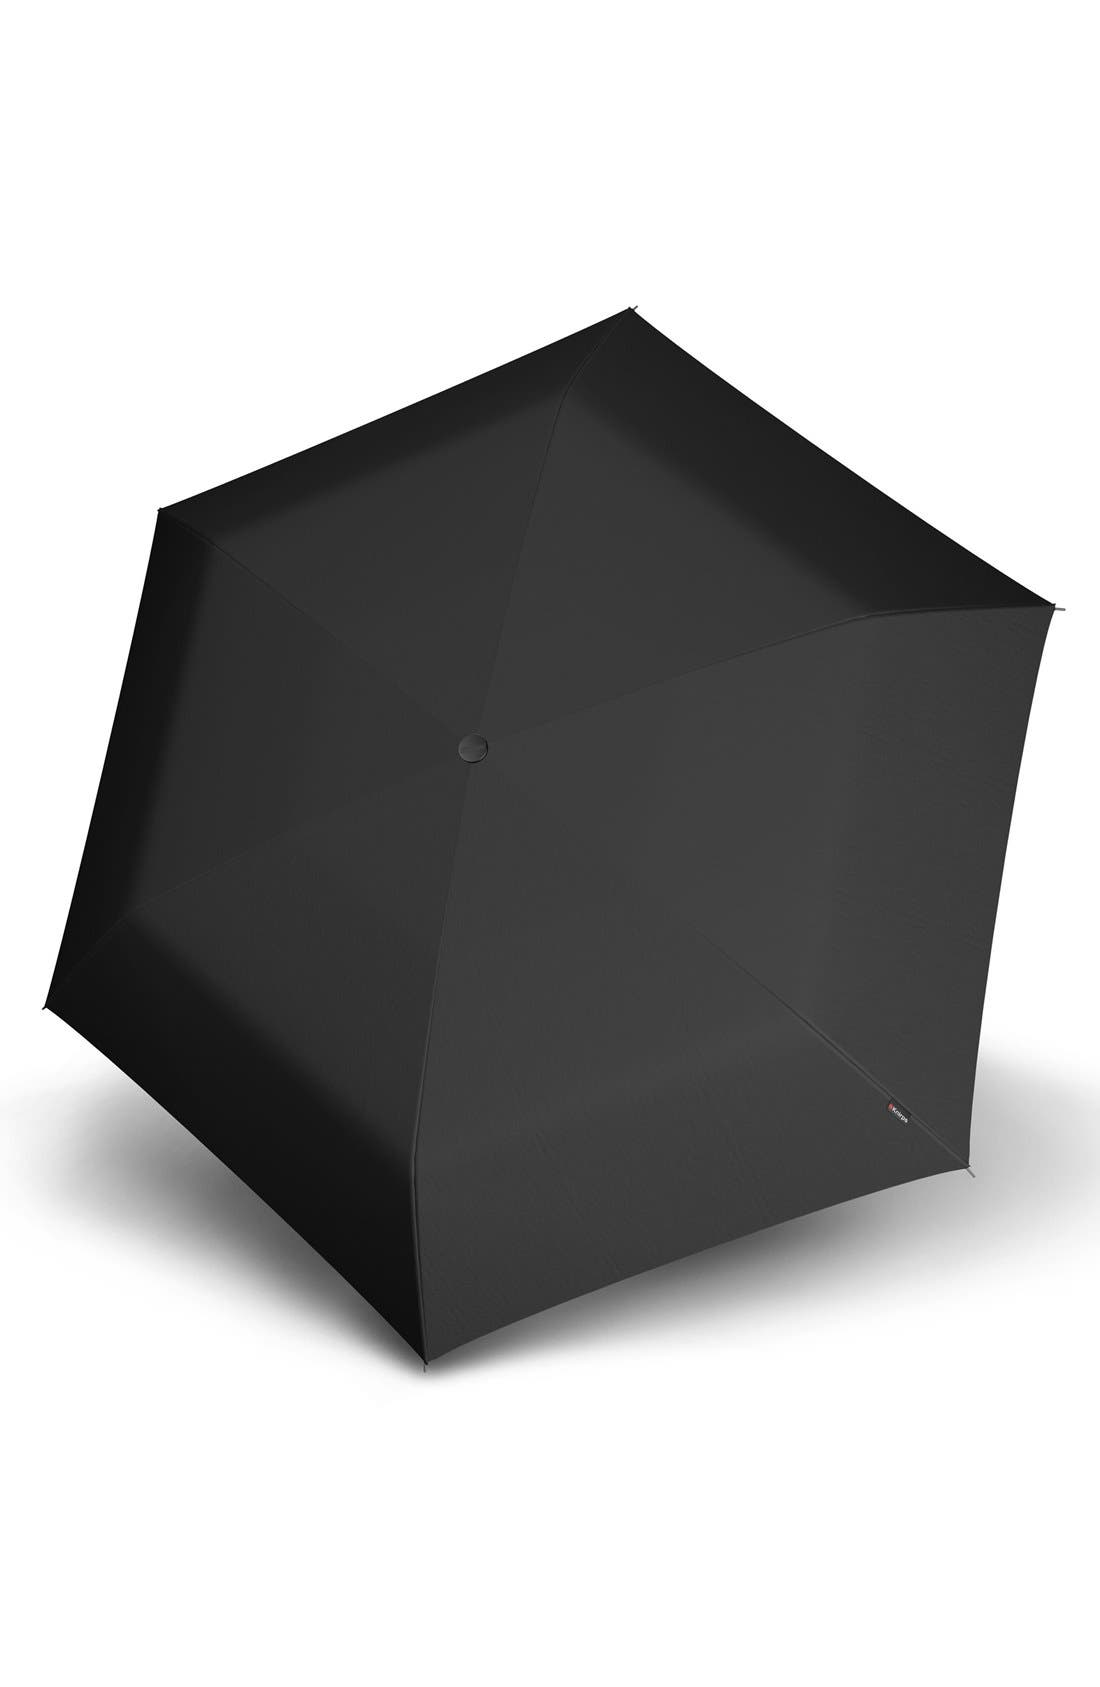 'Flat Duomatic' Umbrella,                             Main thumbnail 1, color,                             001